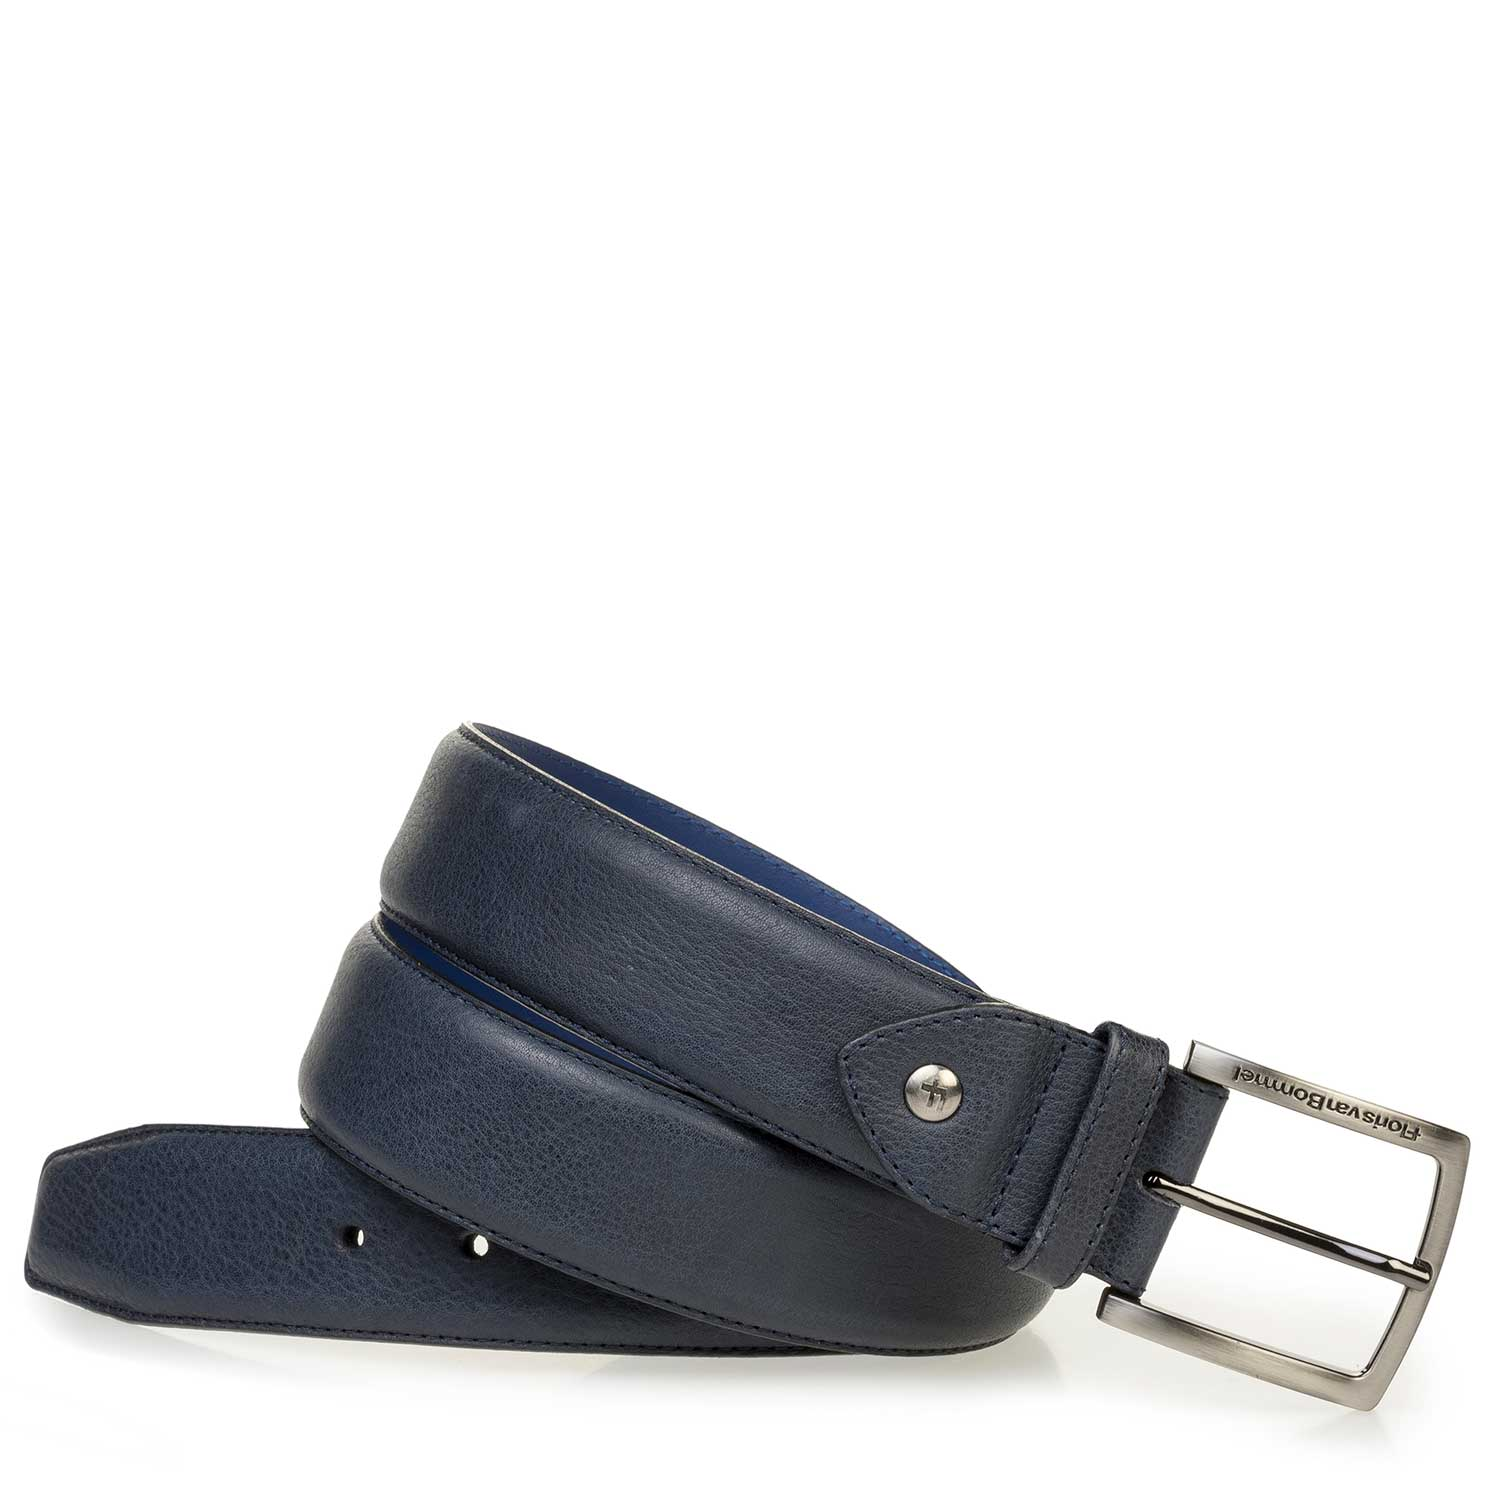 75189/62 - Blue nubuck leather belt